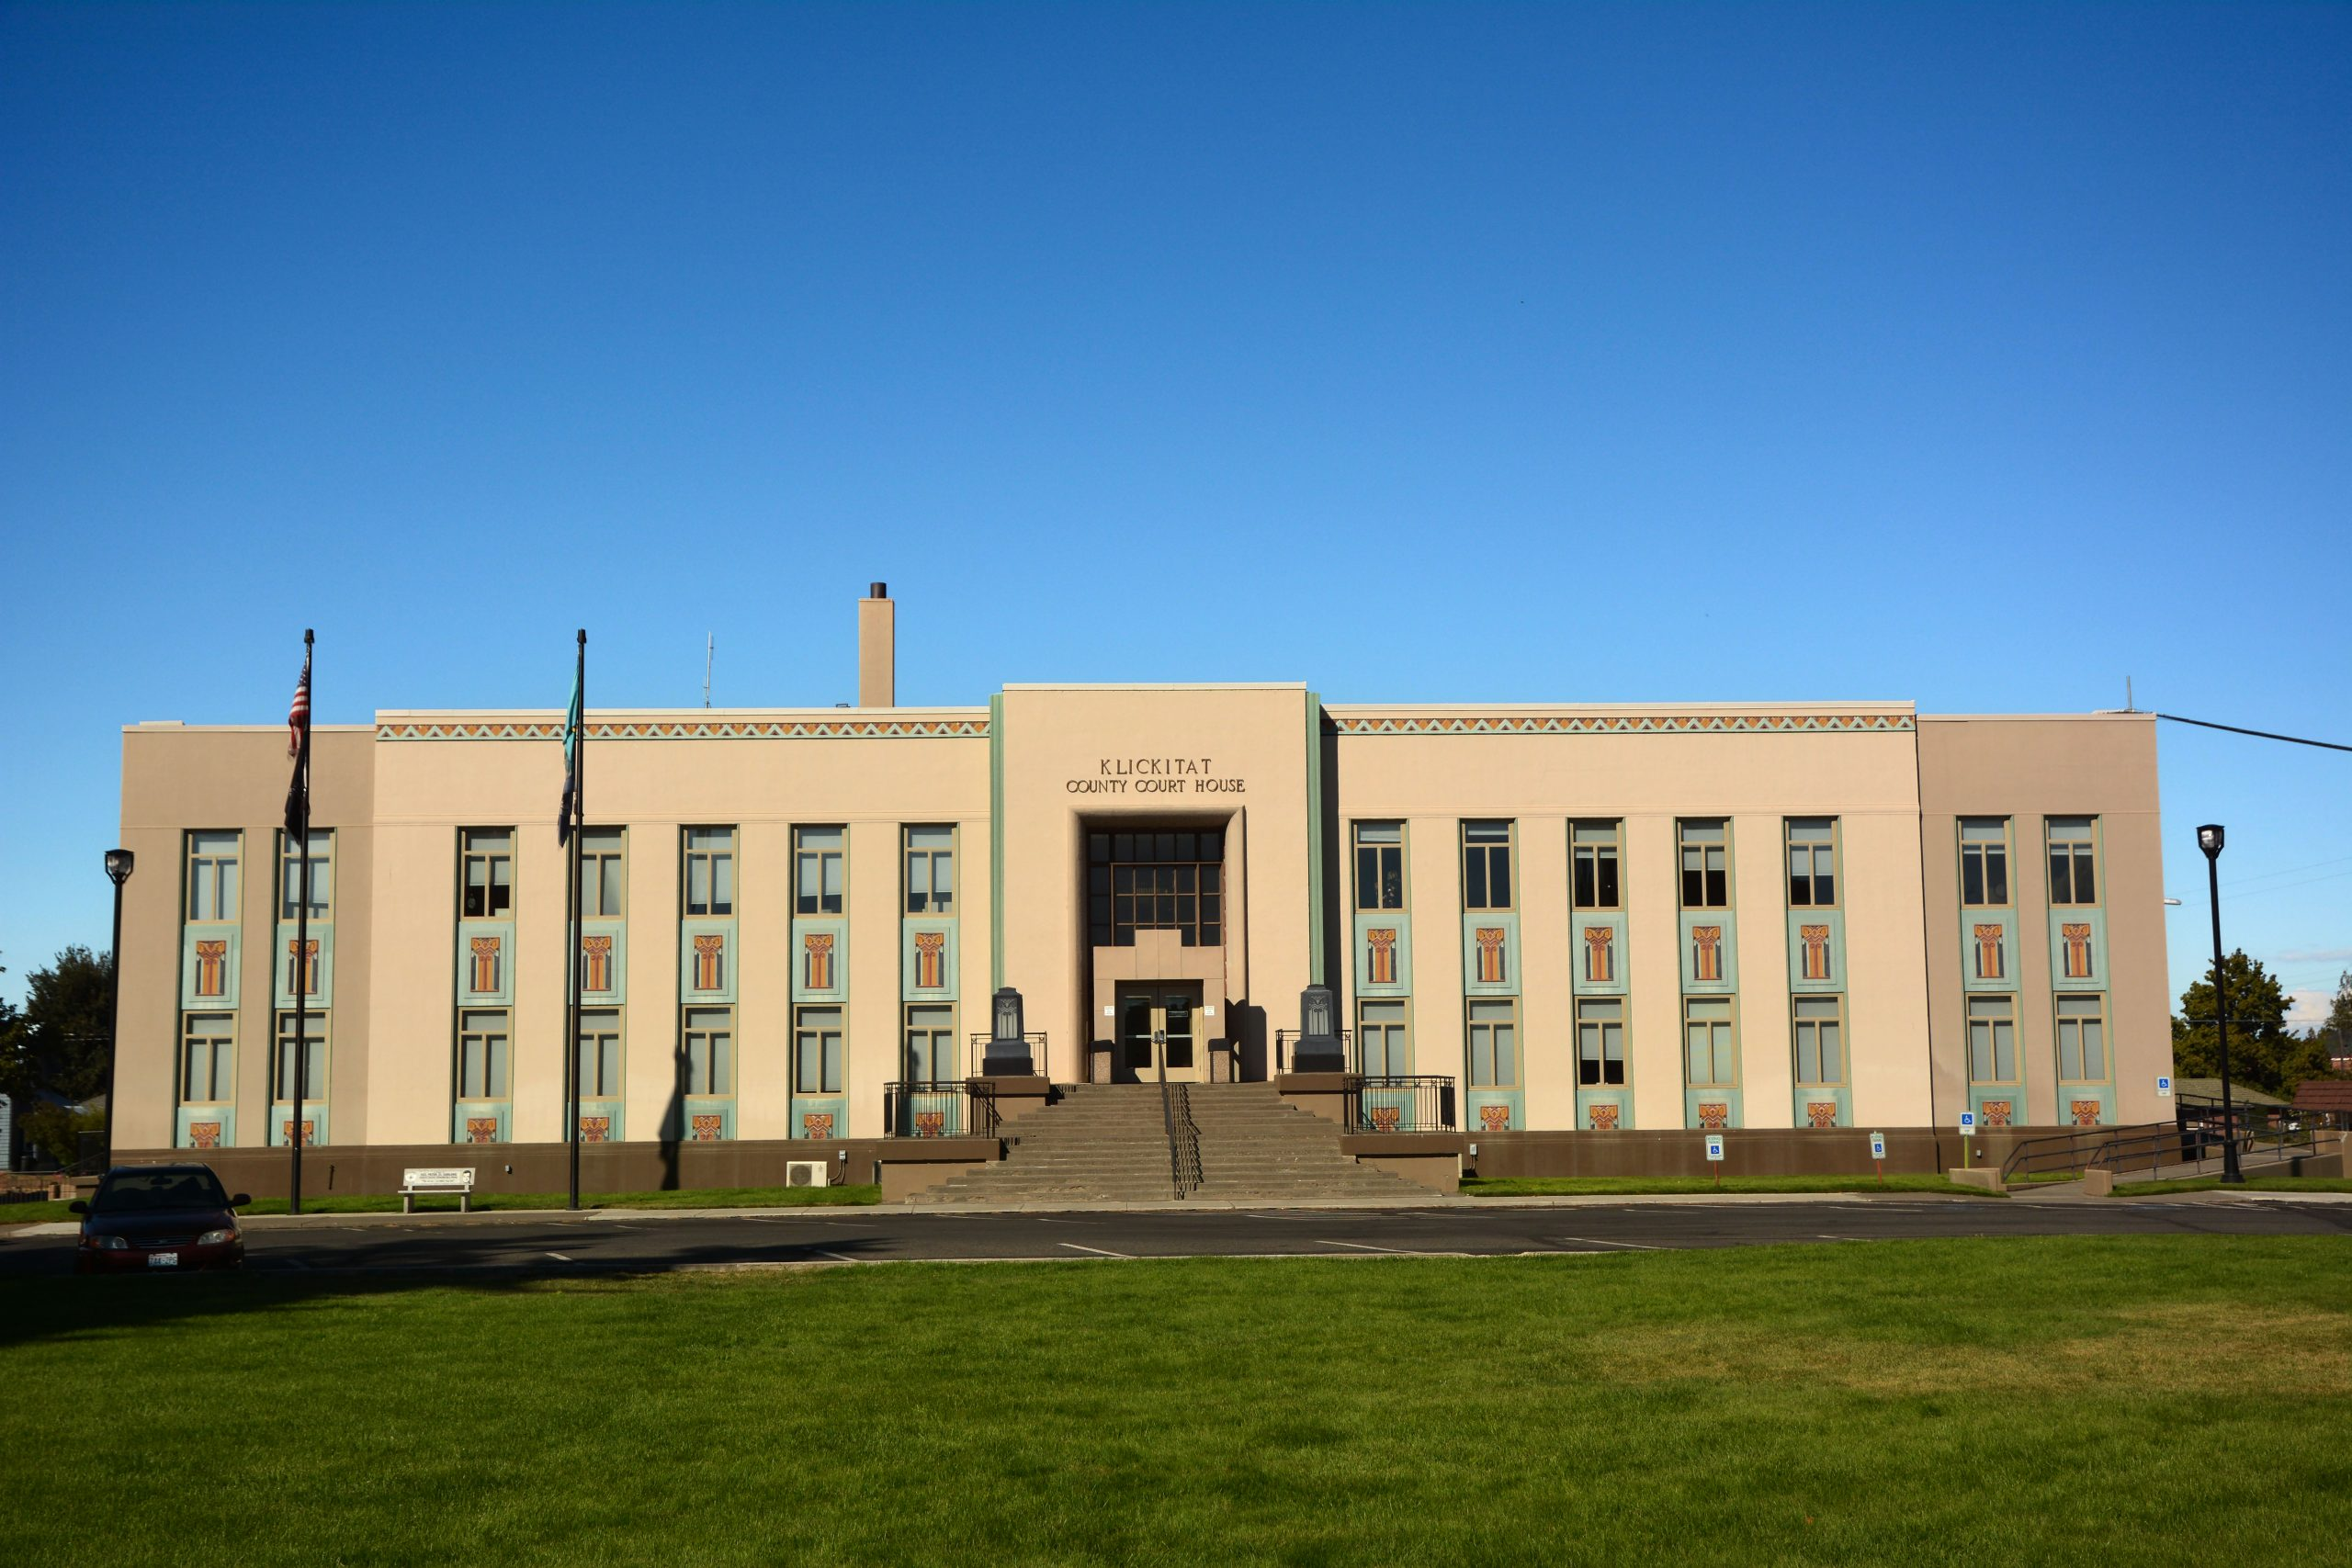 The Klickitat County Court House